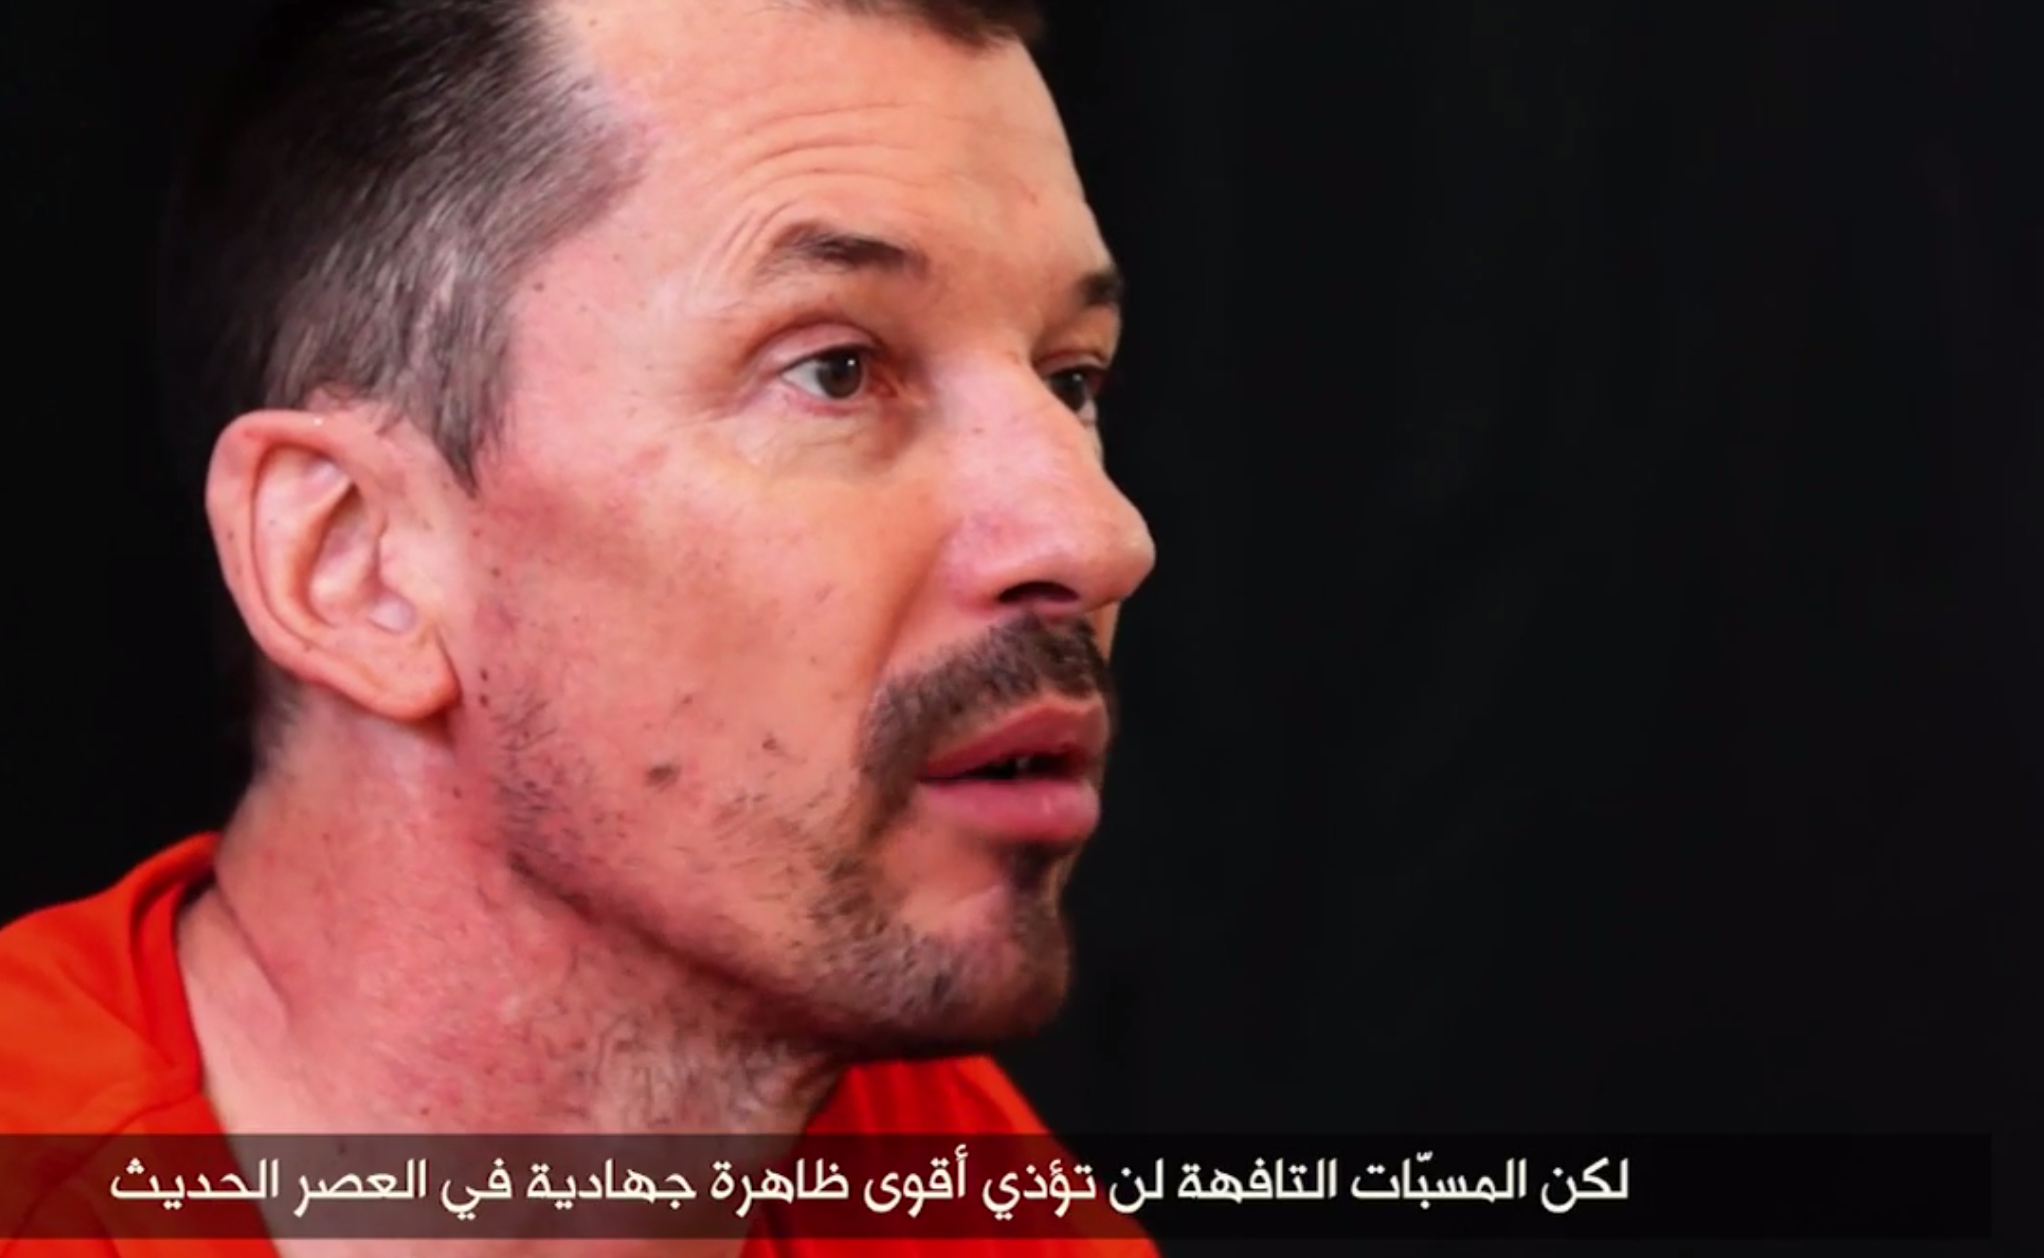 New ISIS Cantlie Video Quotes Ron Paul Supporter, Gloats Over Western Incompetence